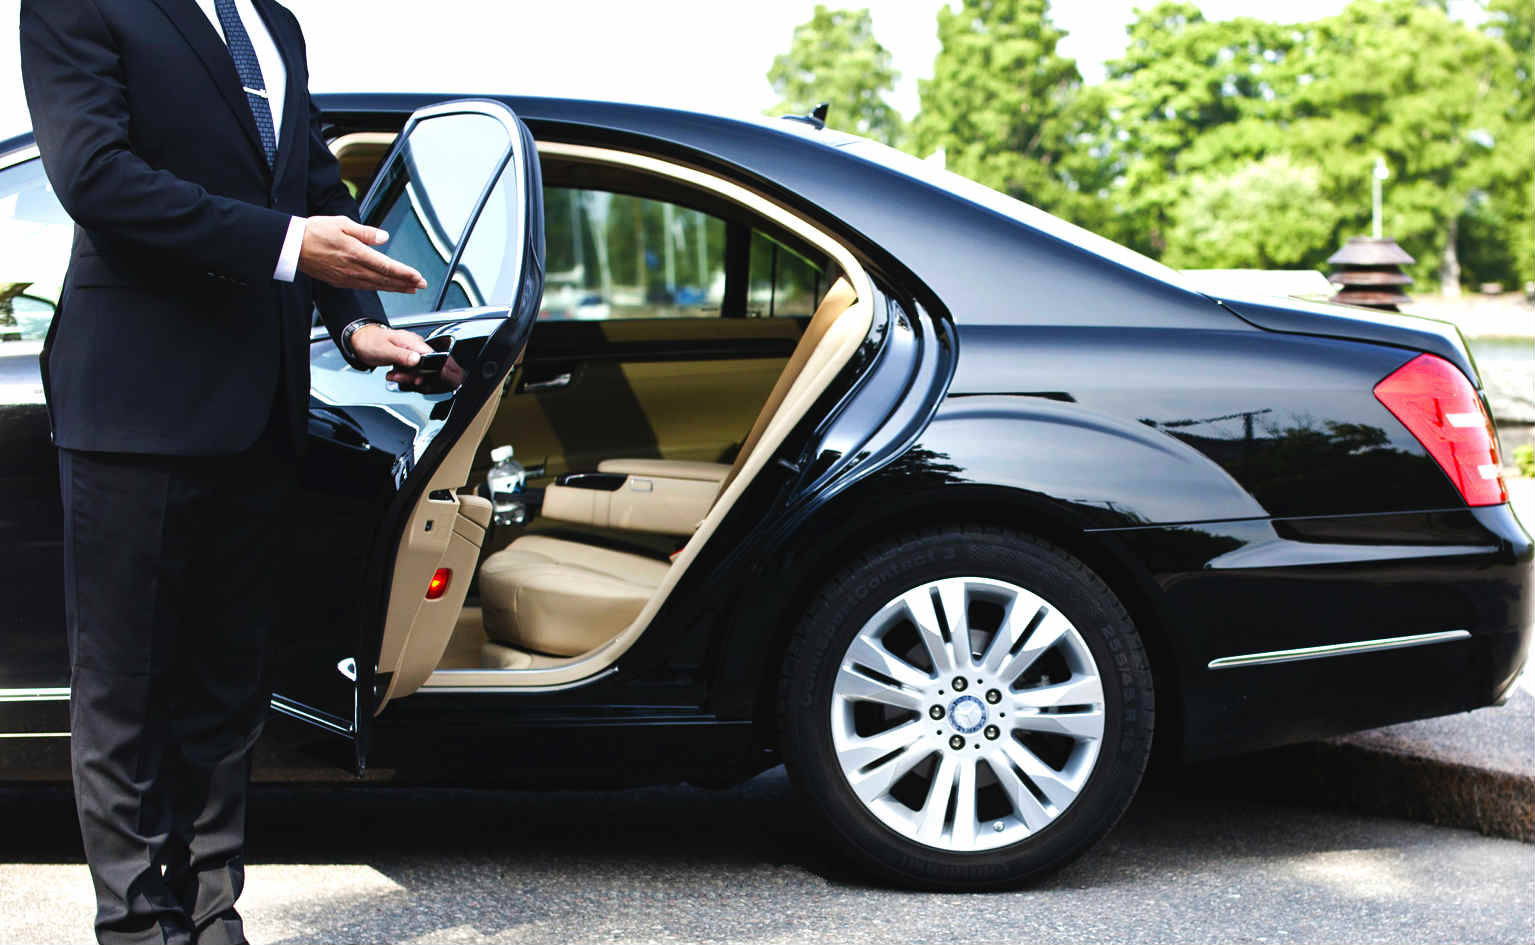 Limo Services Provide Luxury Transportation Anytime